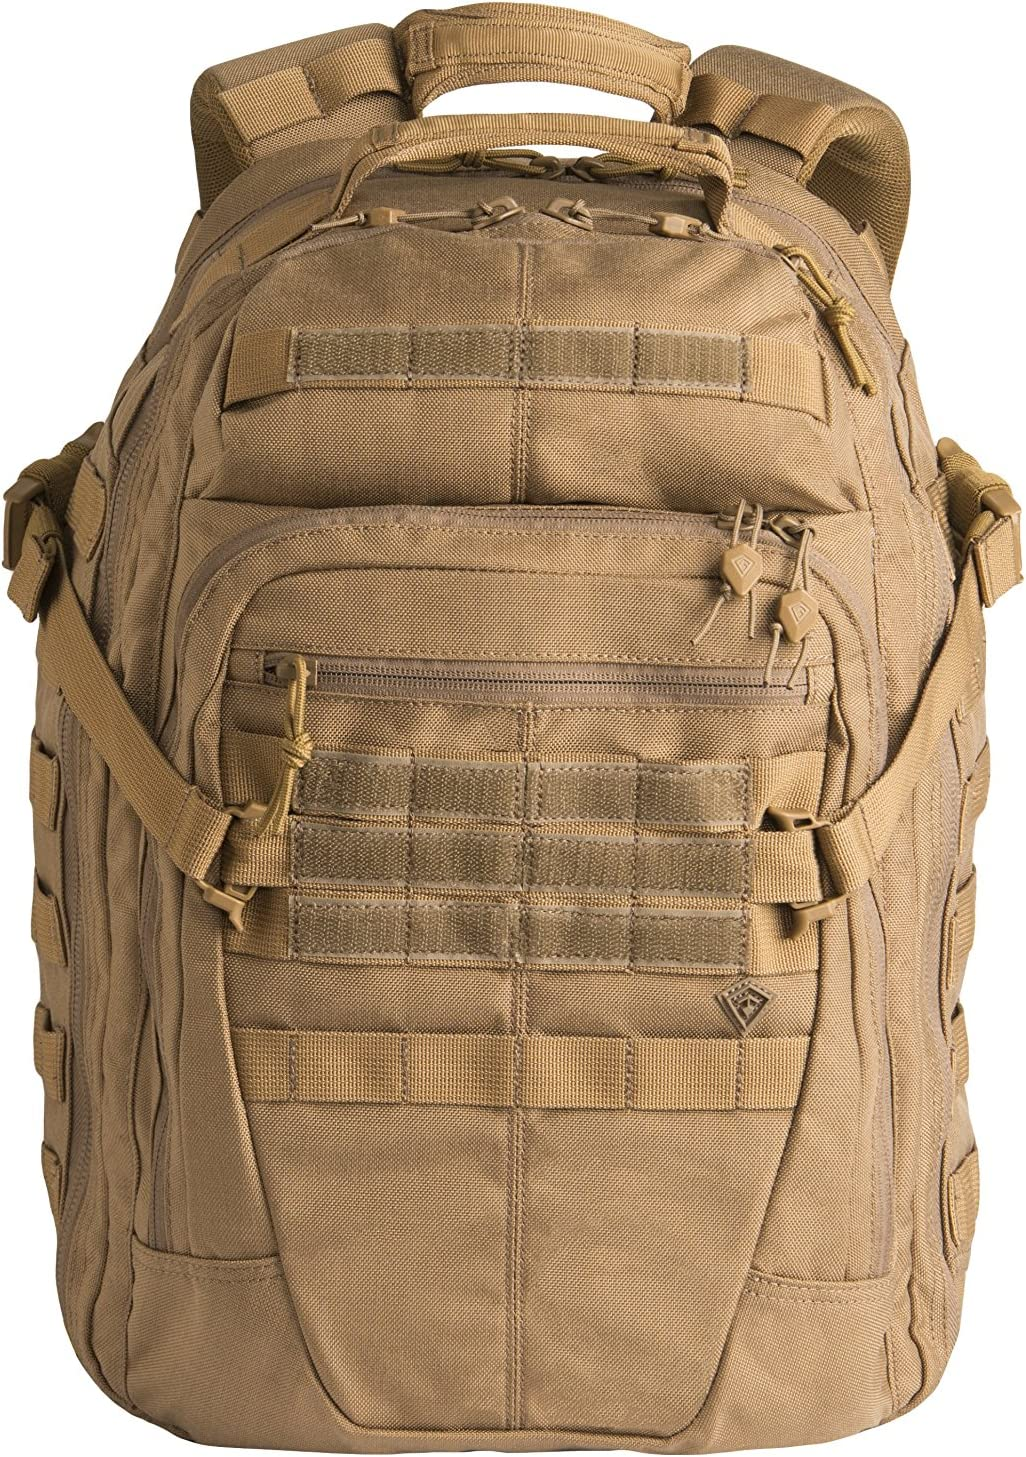 First Tactical Max 51% OFF Specialist 1-Day Backpack Assault Mil Medium 36L Finally popular brand